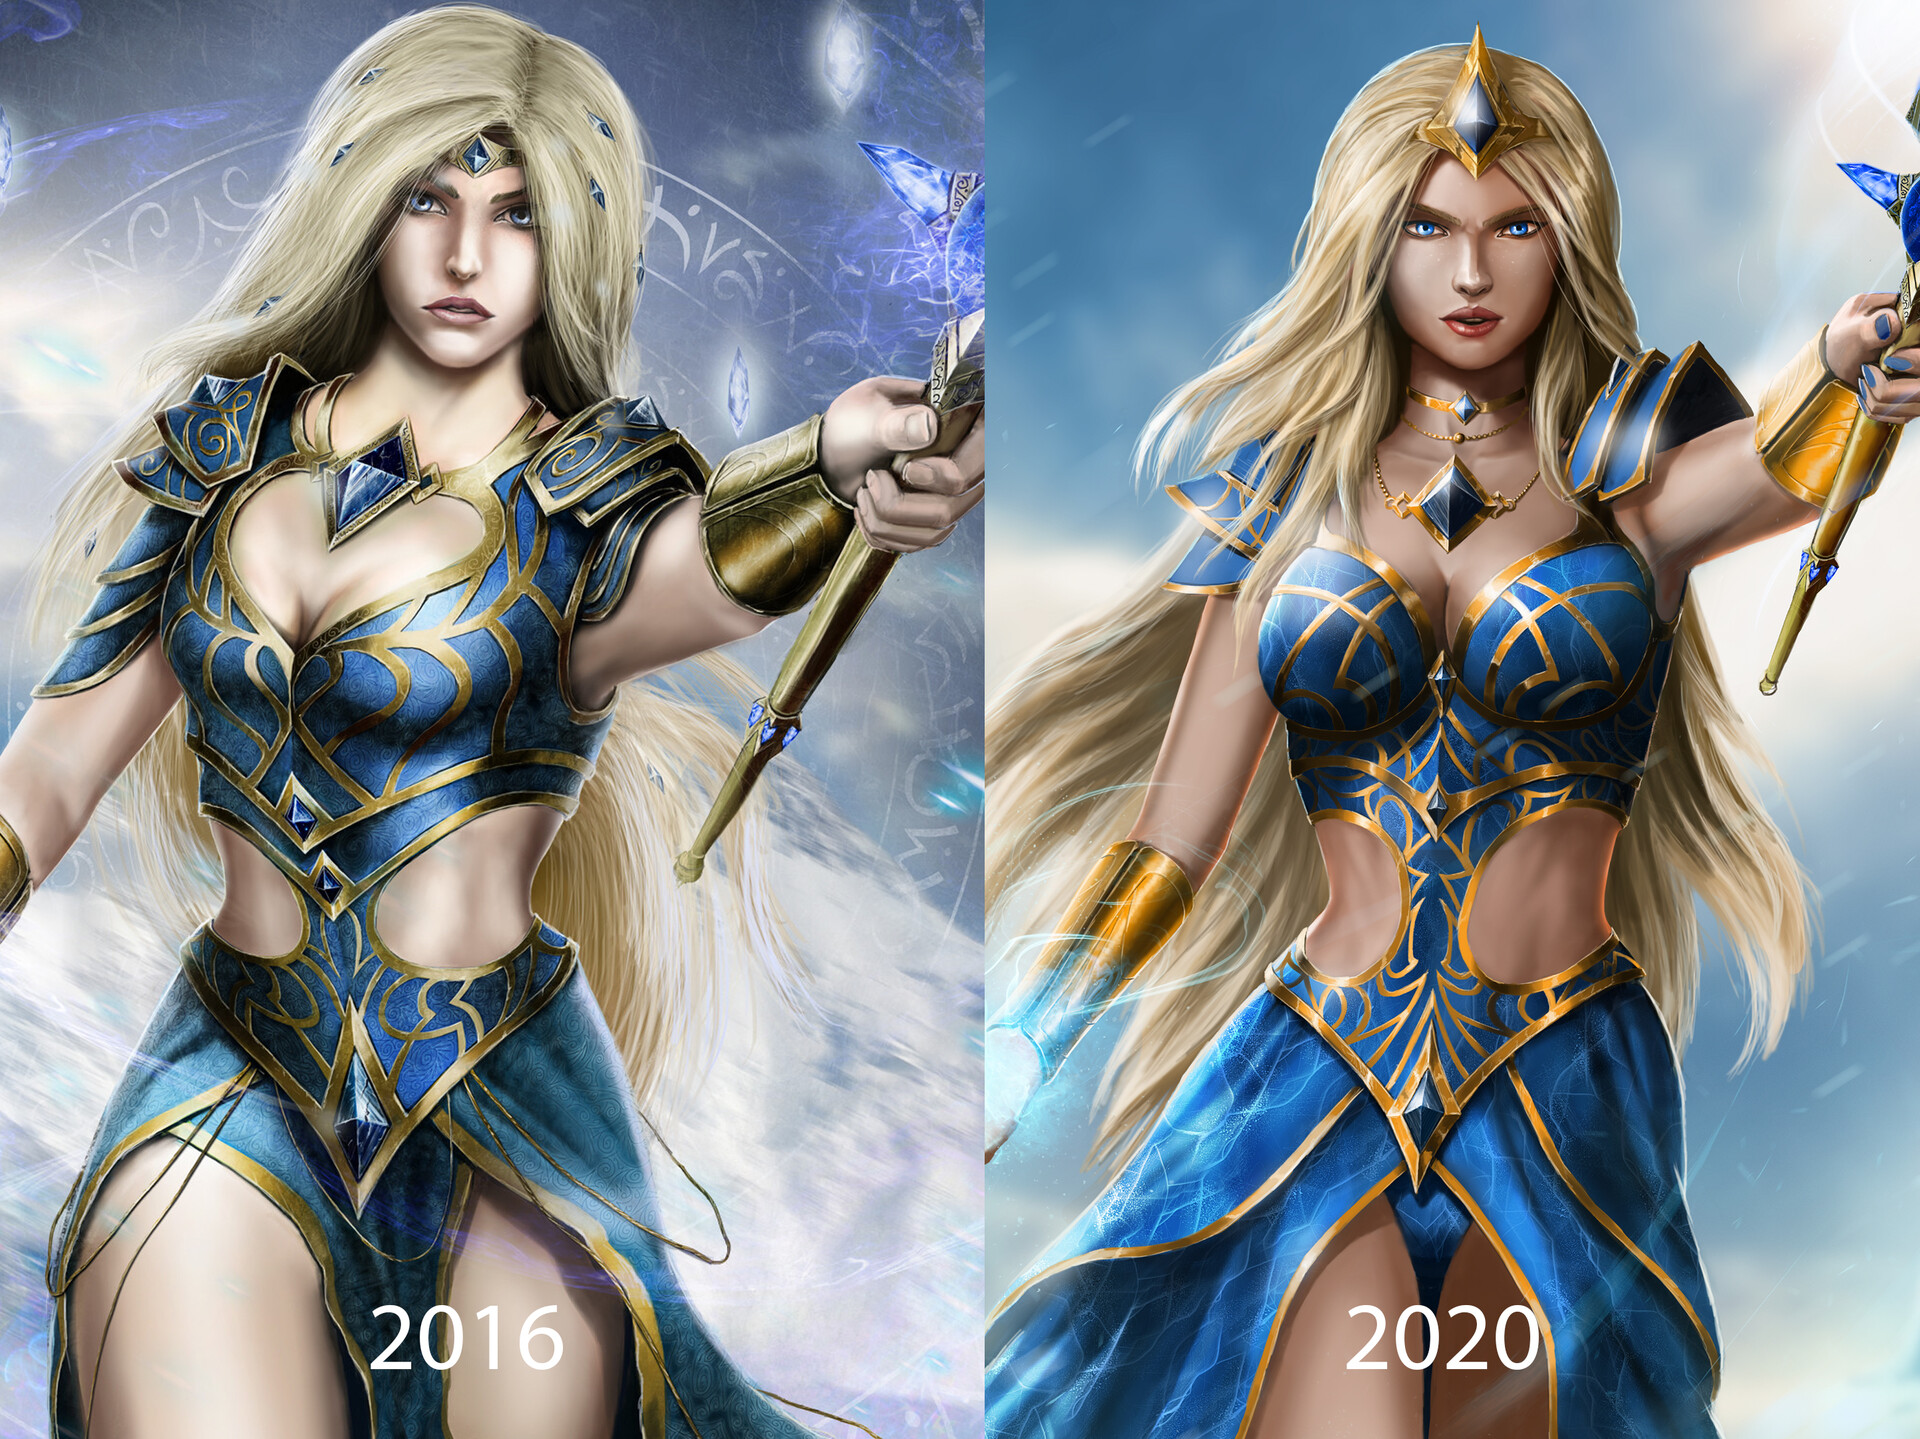 Aveena is a repaint of a character I painted in 2016.  I've improved a lot since then so it's really nice to see how far I've come